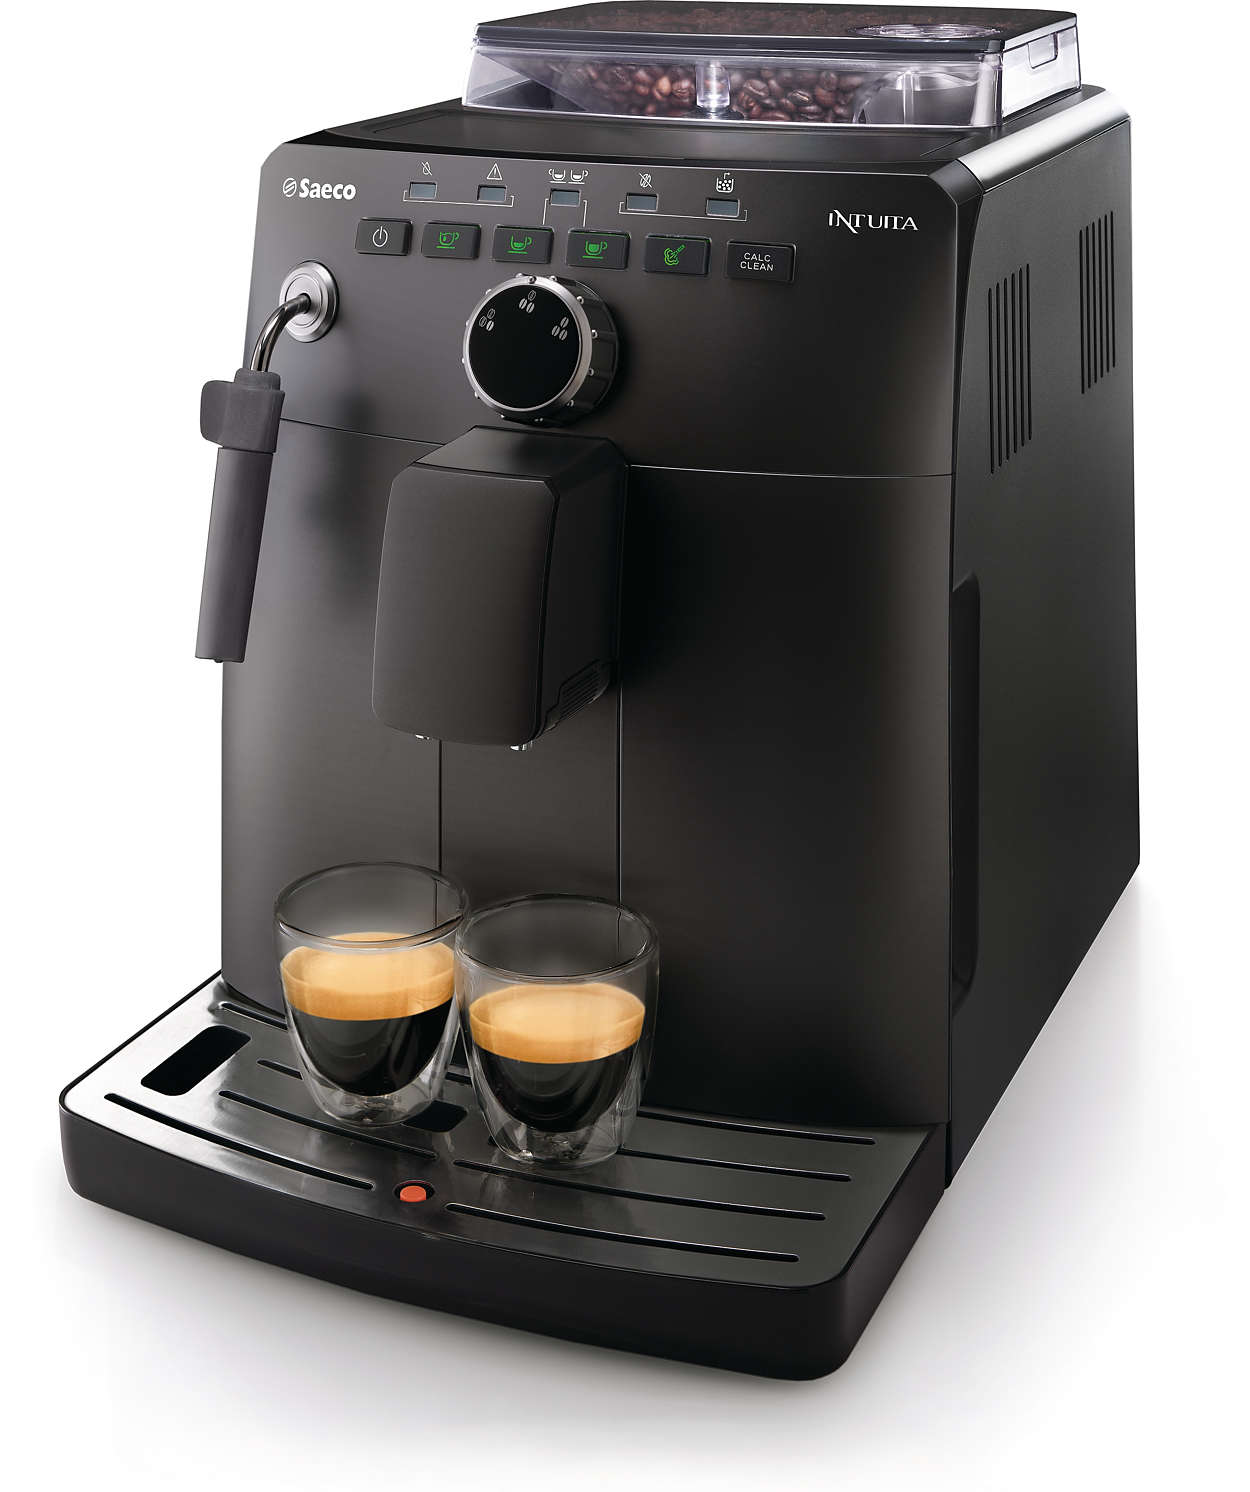 Espresso from fresh beans